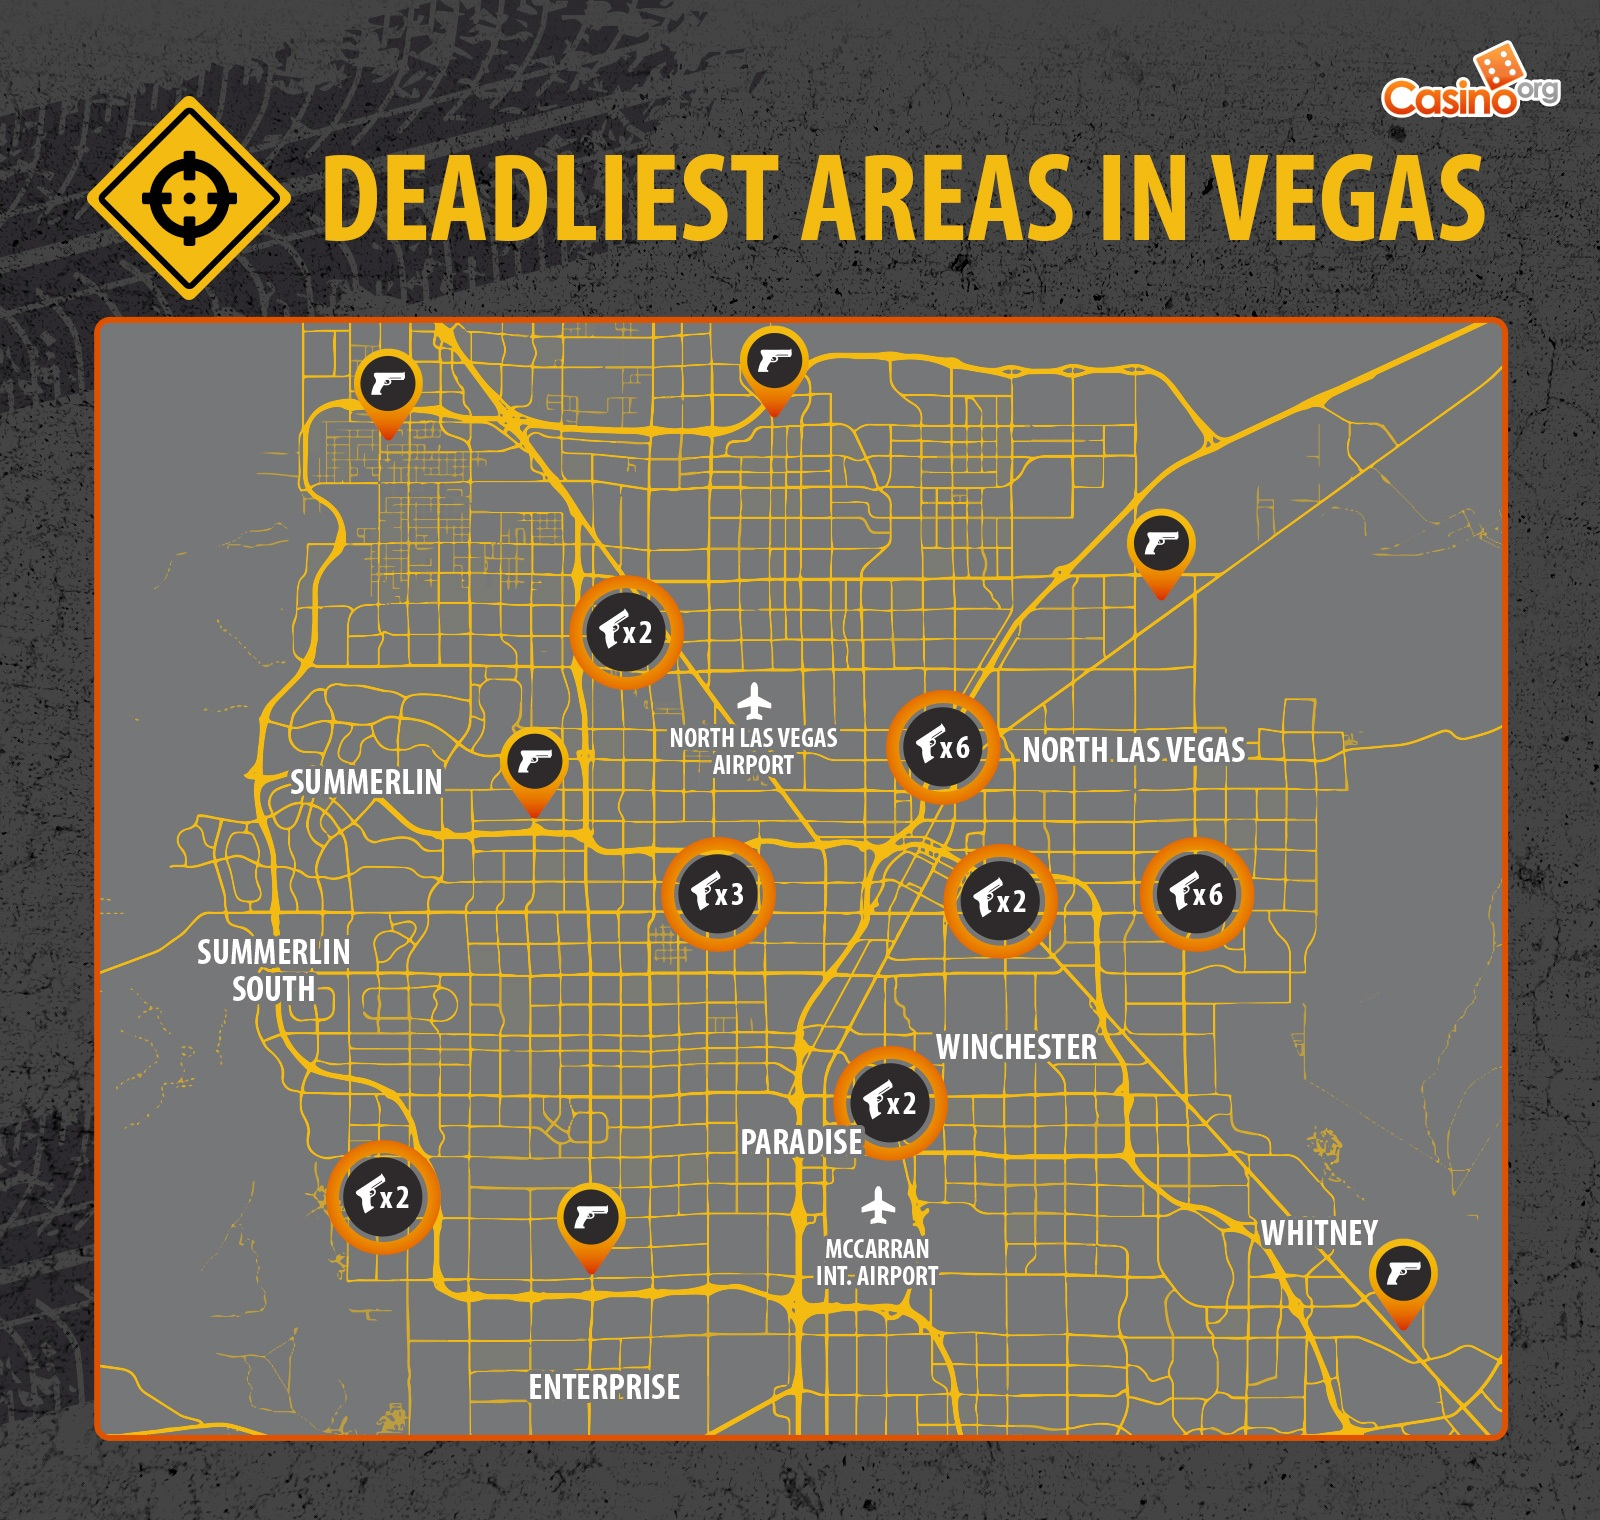 The deadliest areas in Vegas